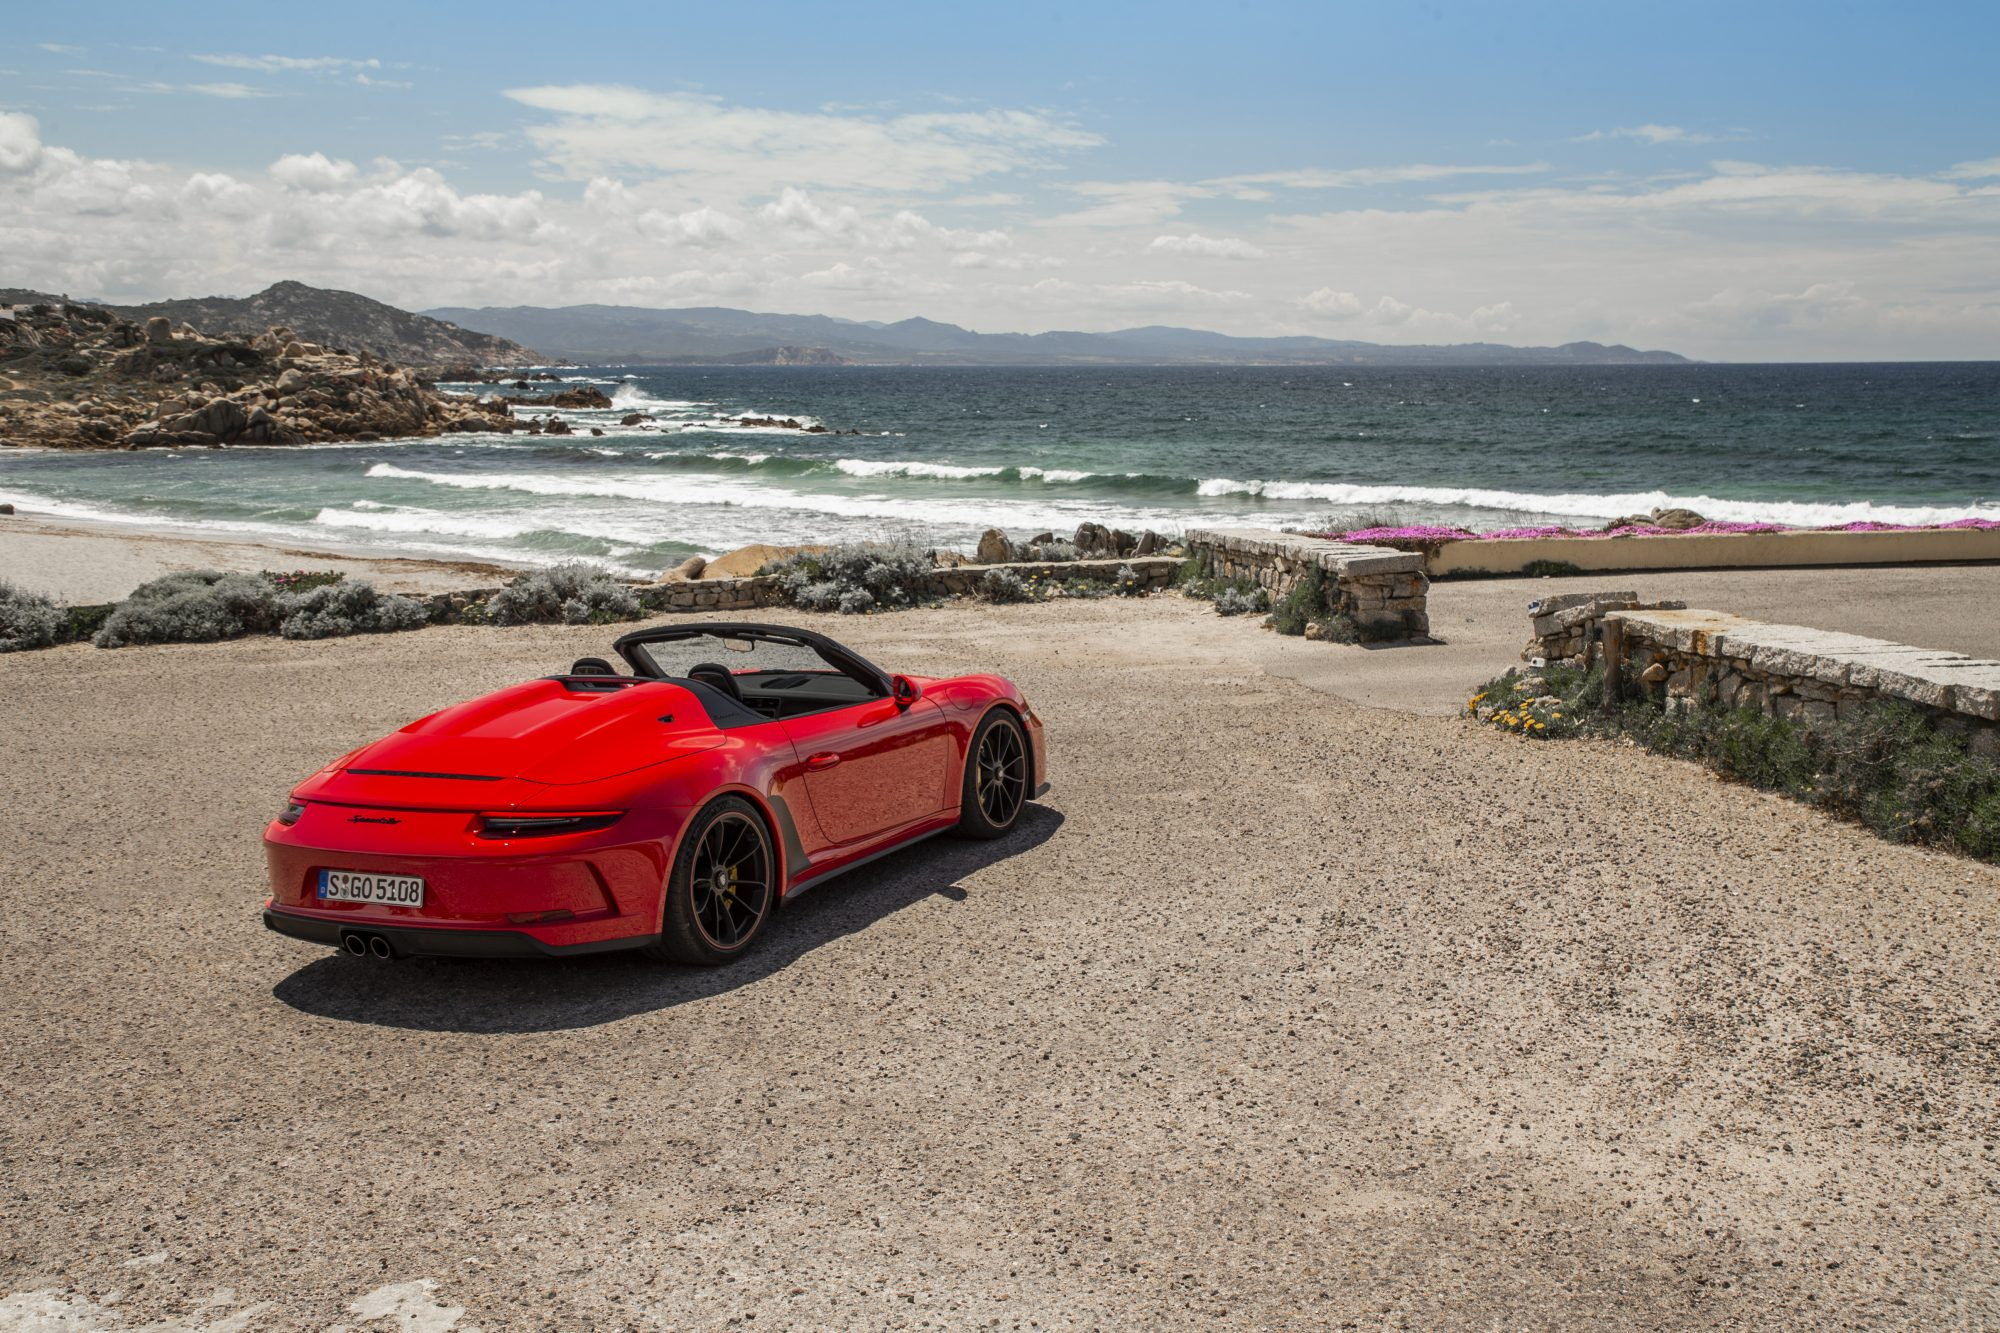 Porsche 911 Speedster, luxury, luxury car, sport car, Porsche, Sardinia, Italy, speed, GT3, road, trip, holiday, Carrera 4 Cabriolet, ceramic brakes, cabrio, manually-operated roof,